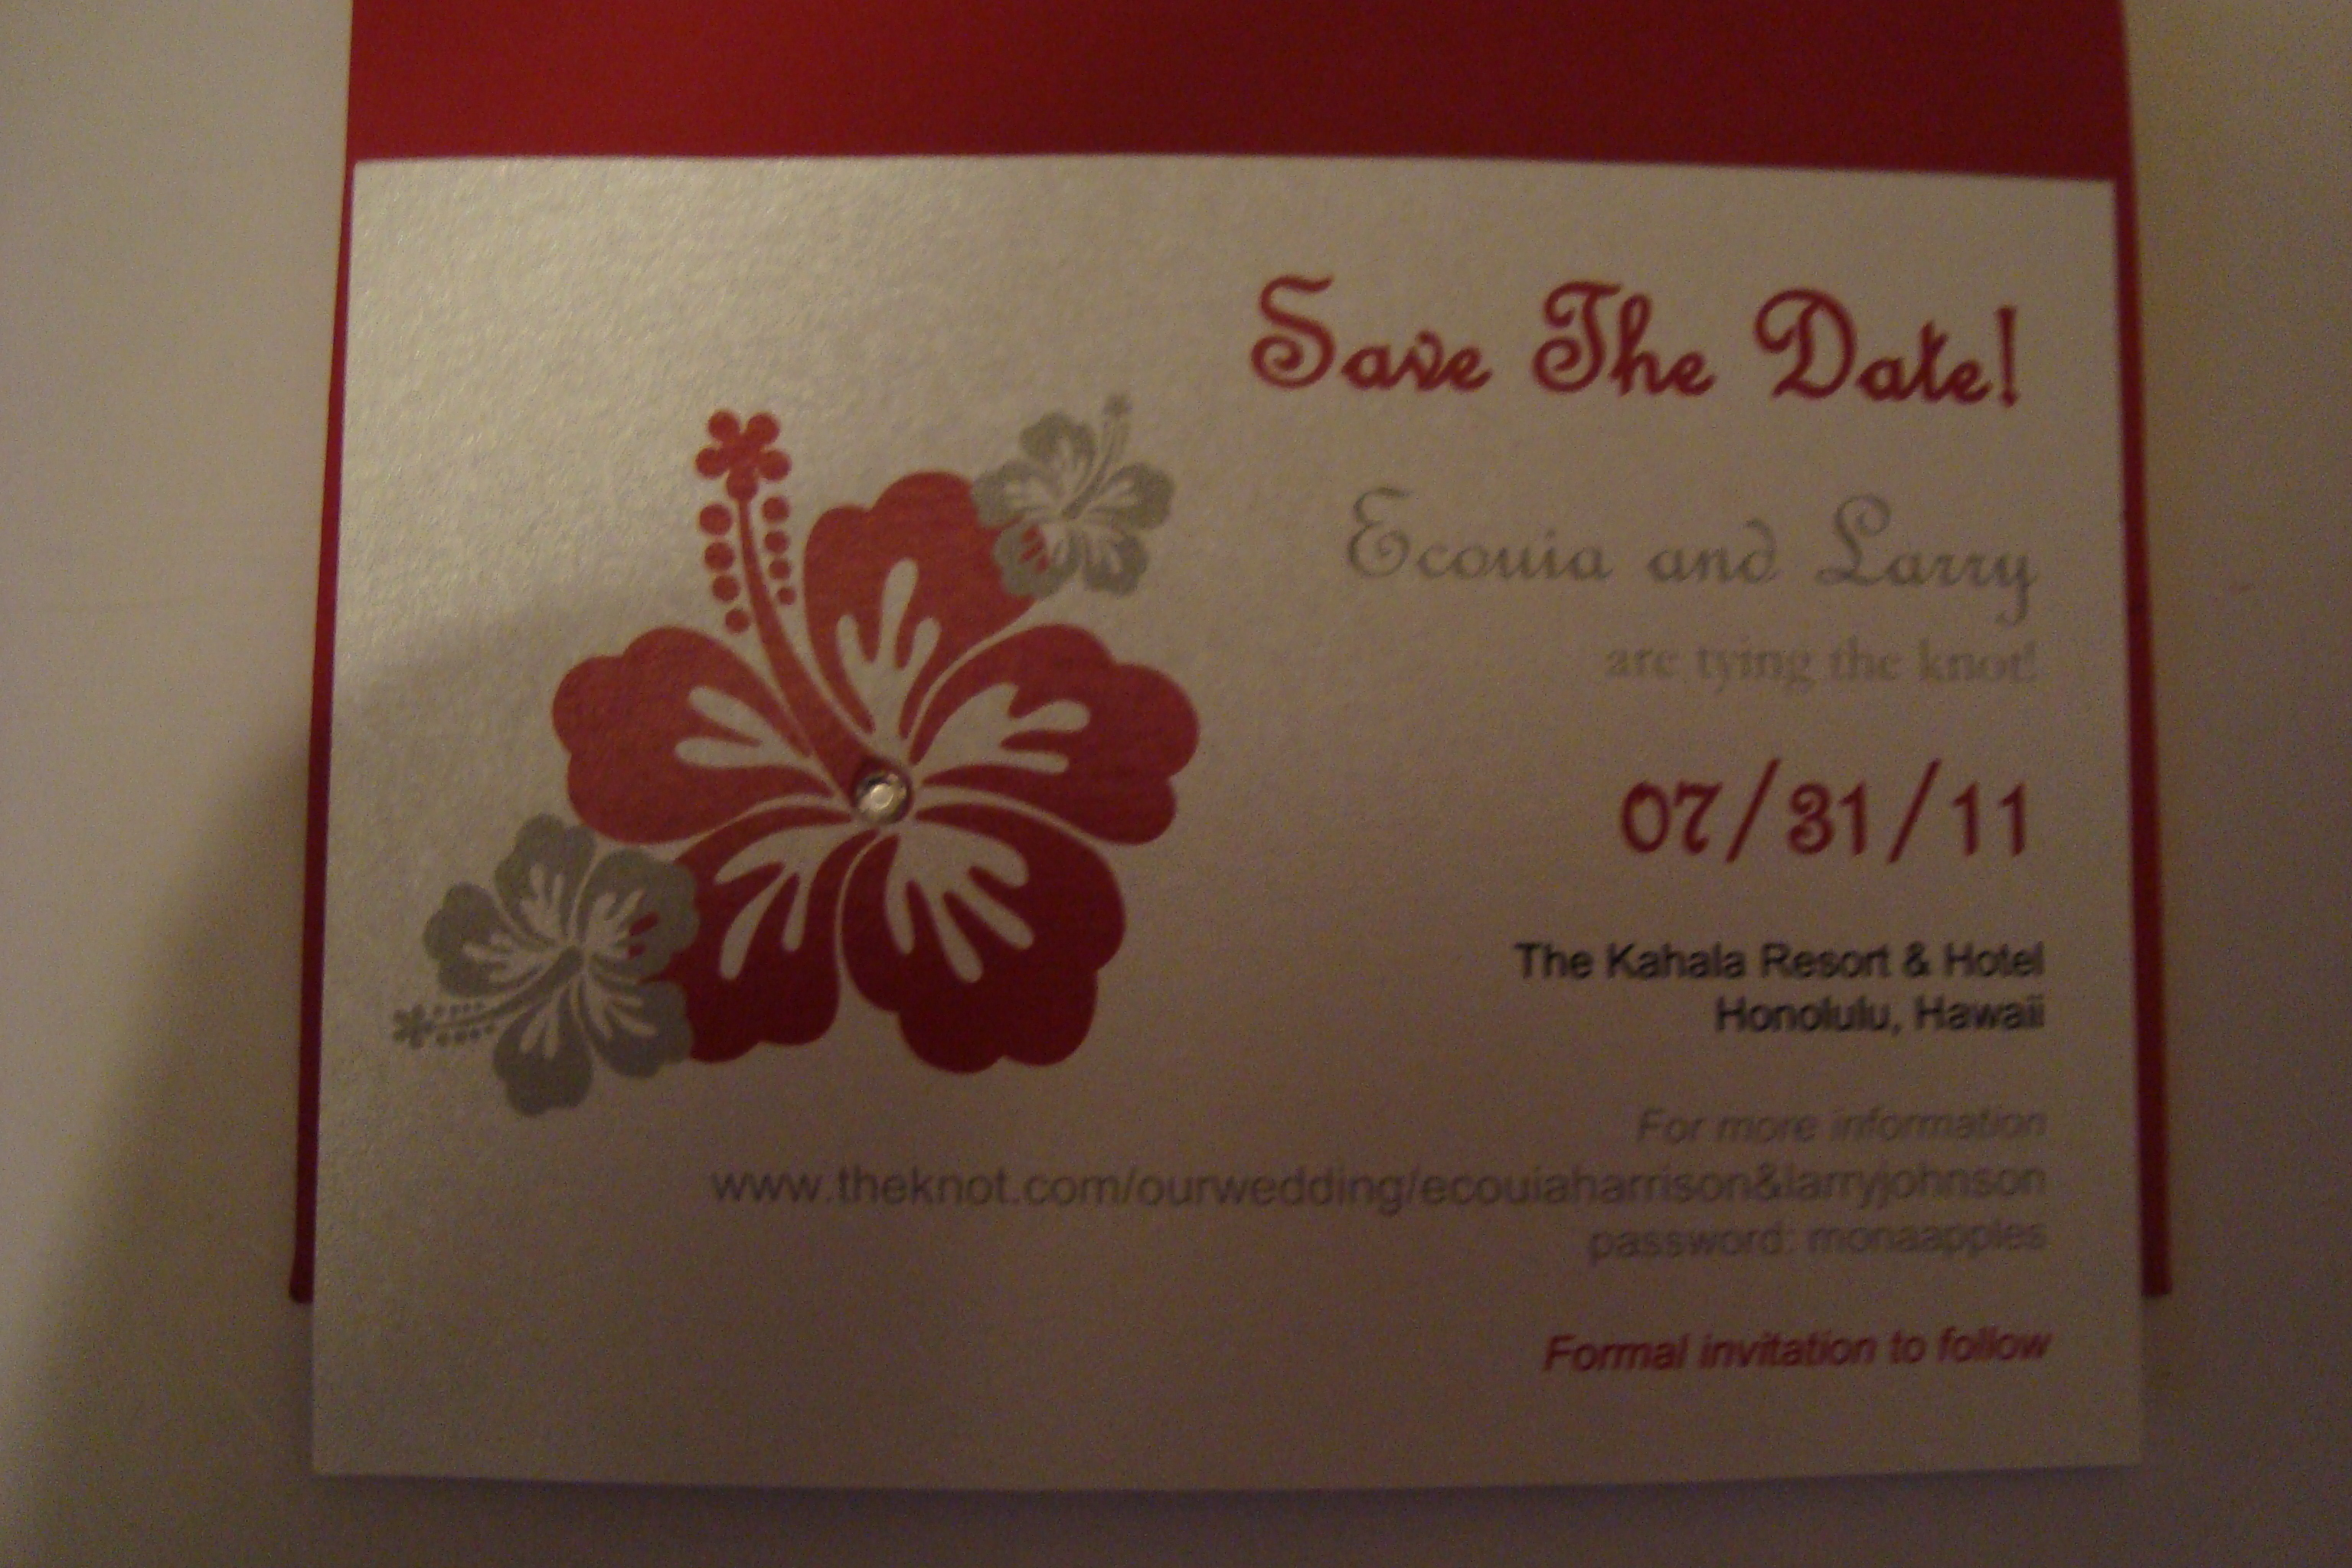 Stationery, white, red, silver, Invitations, The, Save, Date